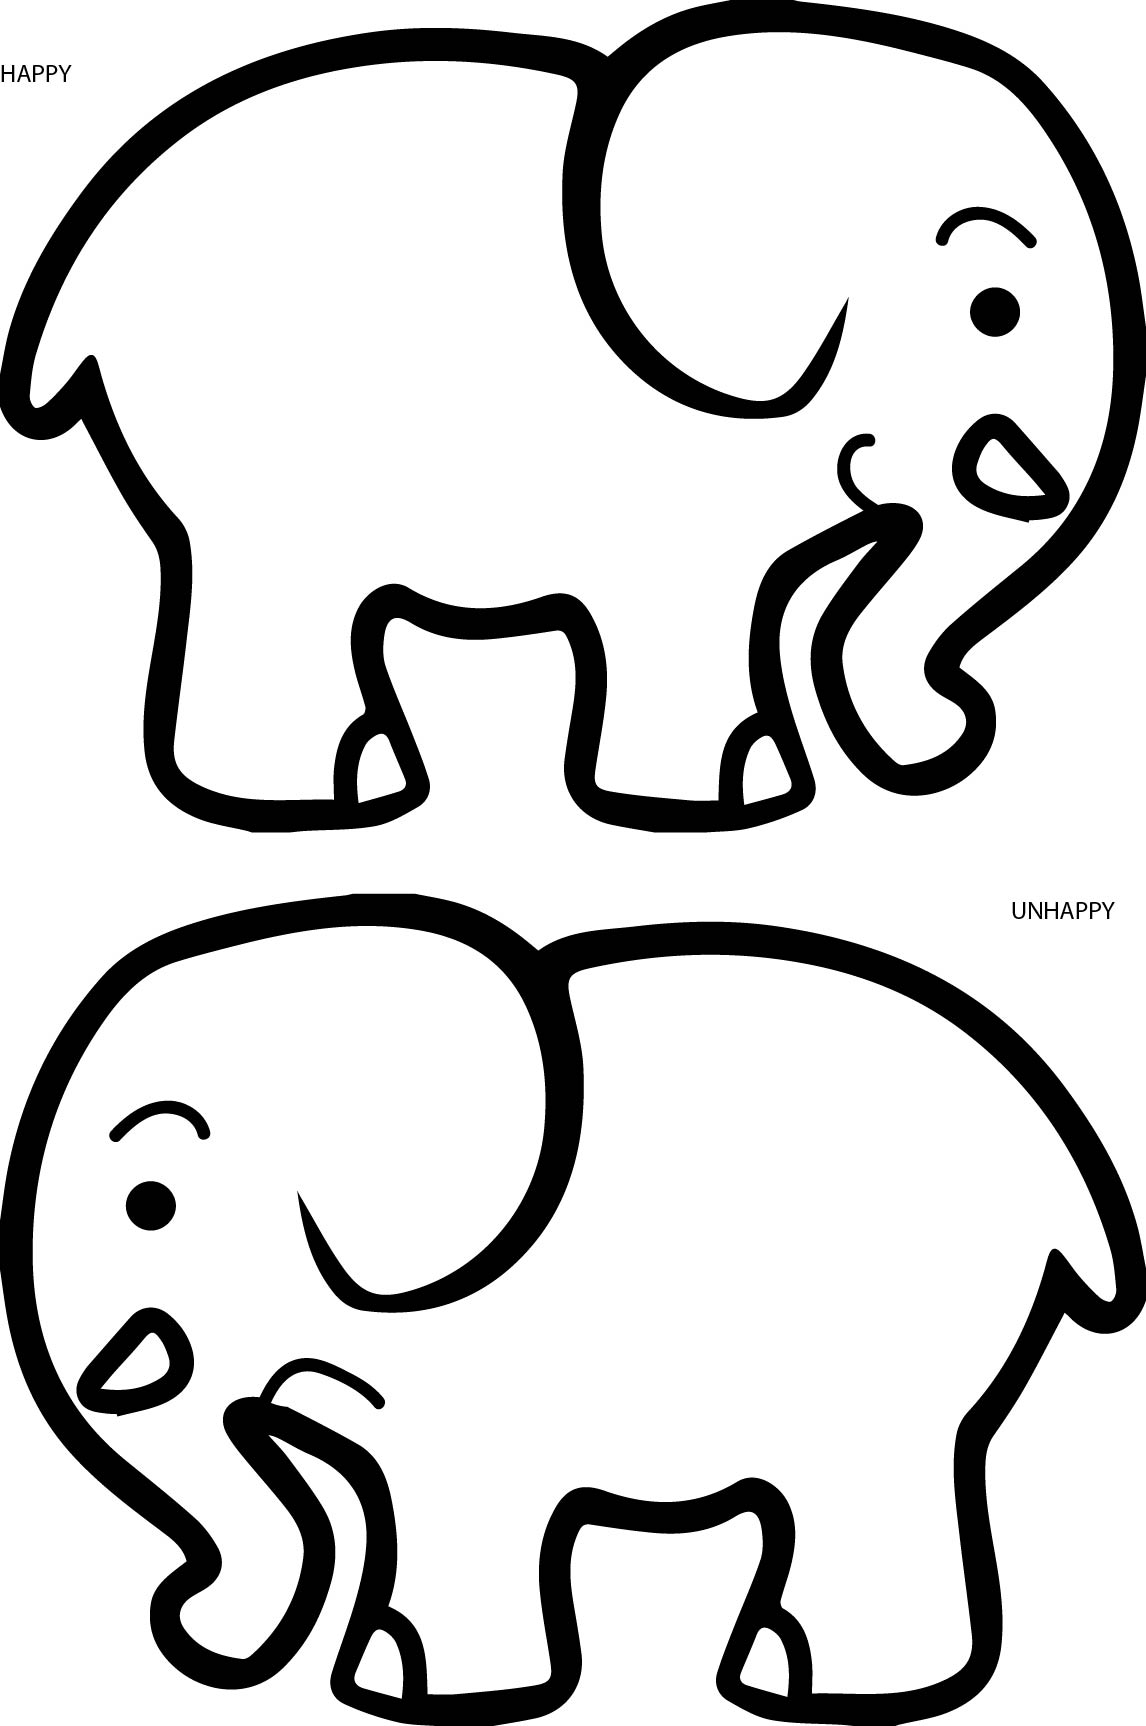 1146x1726 Happy Unhappy Elephant Coloring Page Wecoloringpage